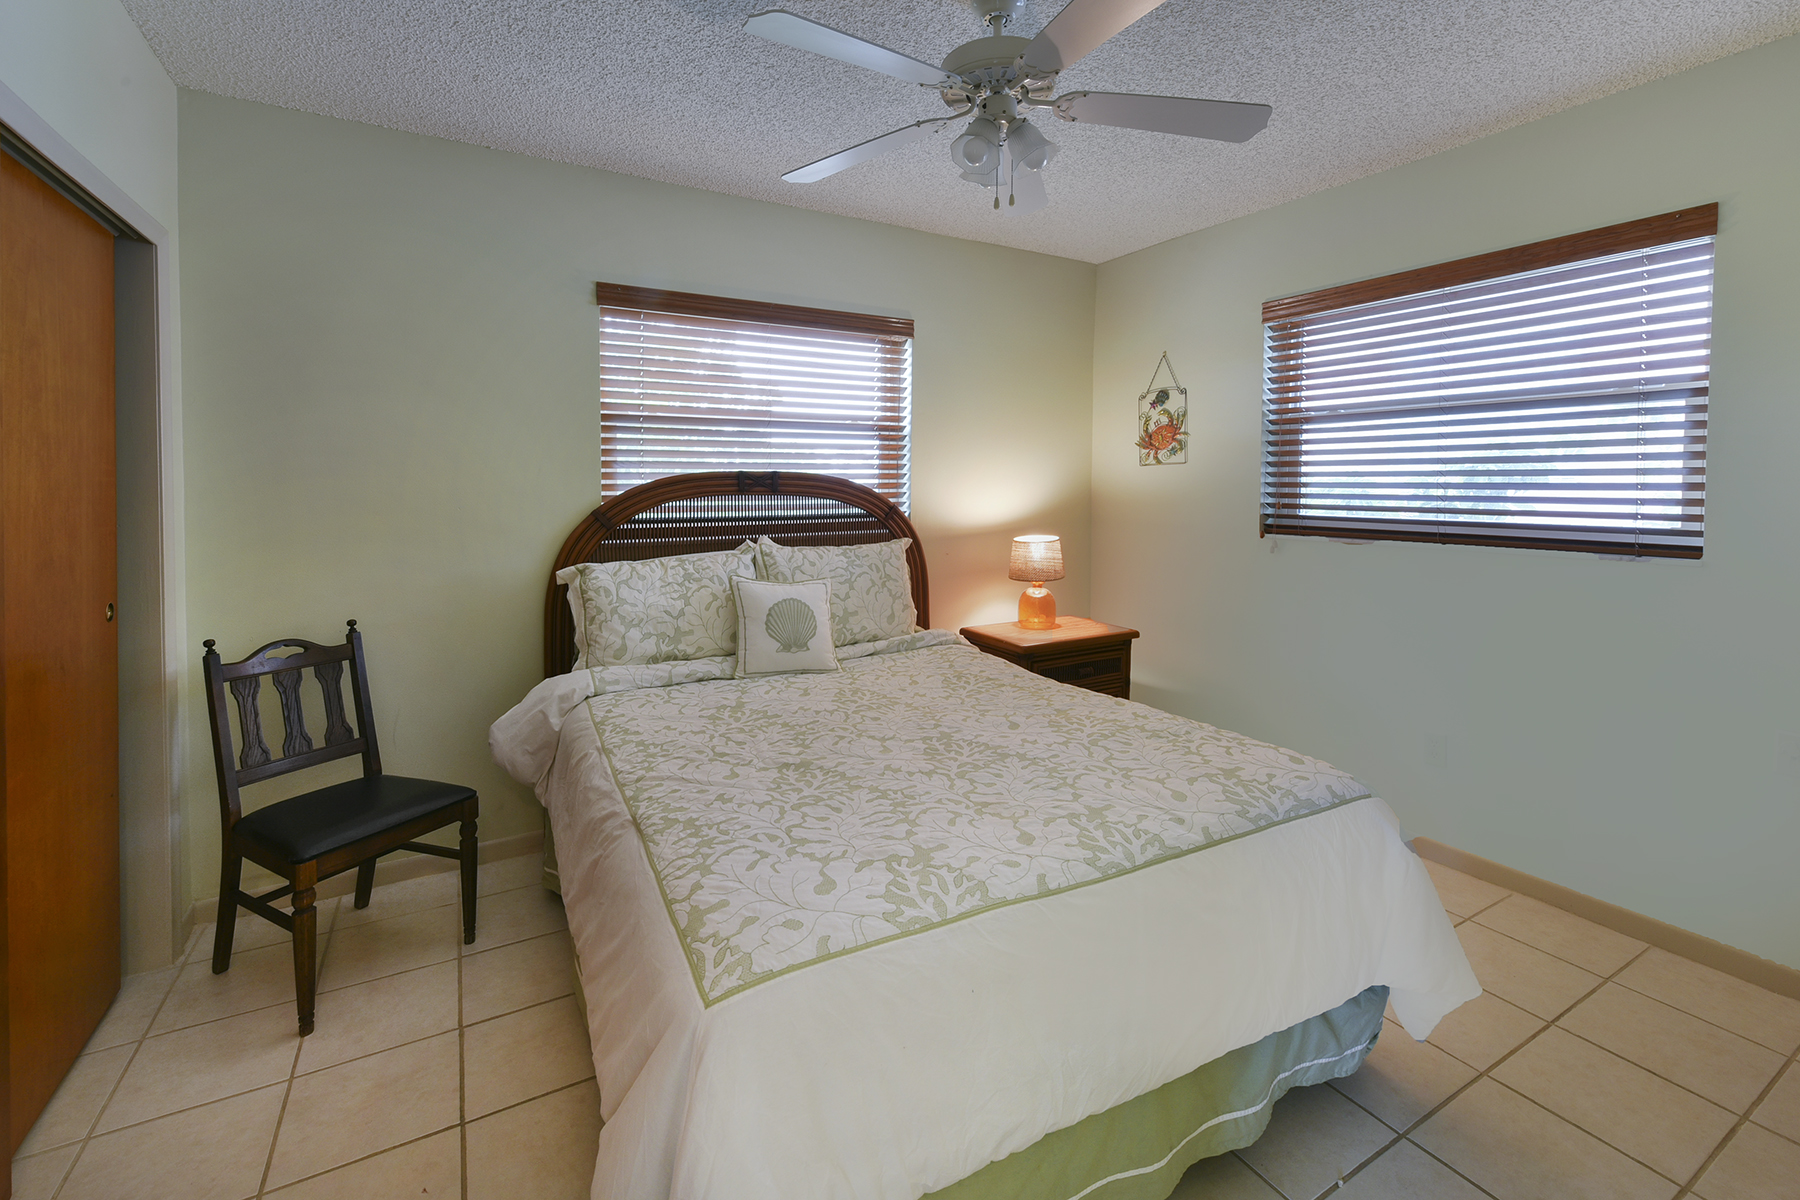 Additional photo for property listing at Desirable  Location 157 Gardenia Street Islamorada, Florida 33070 Estados Unidos